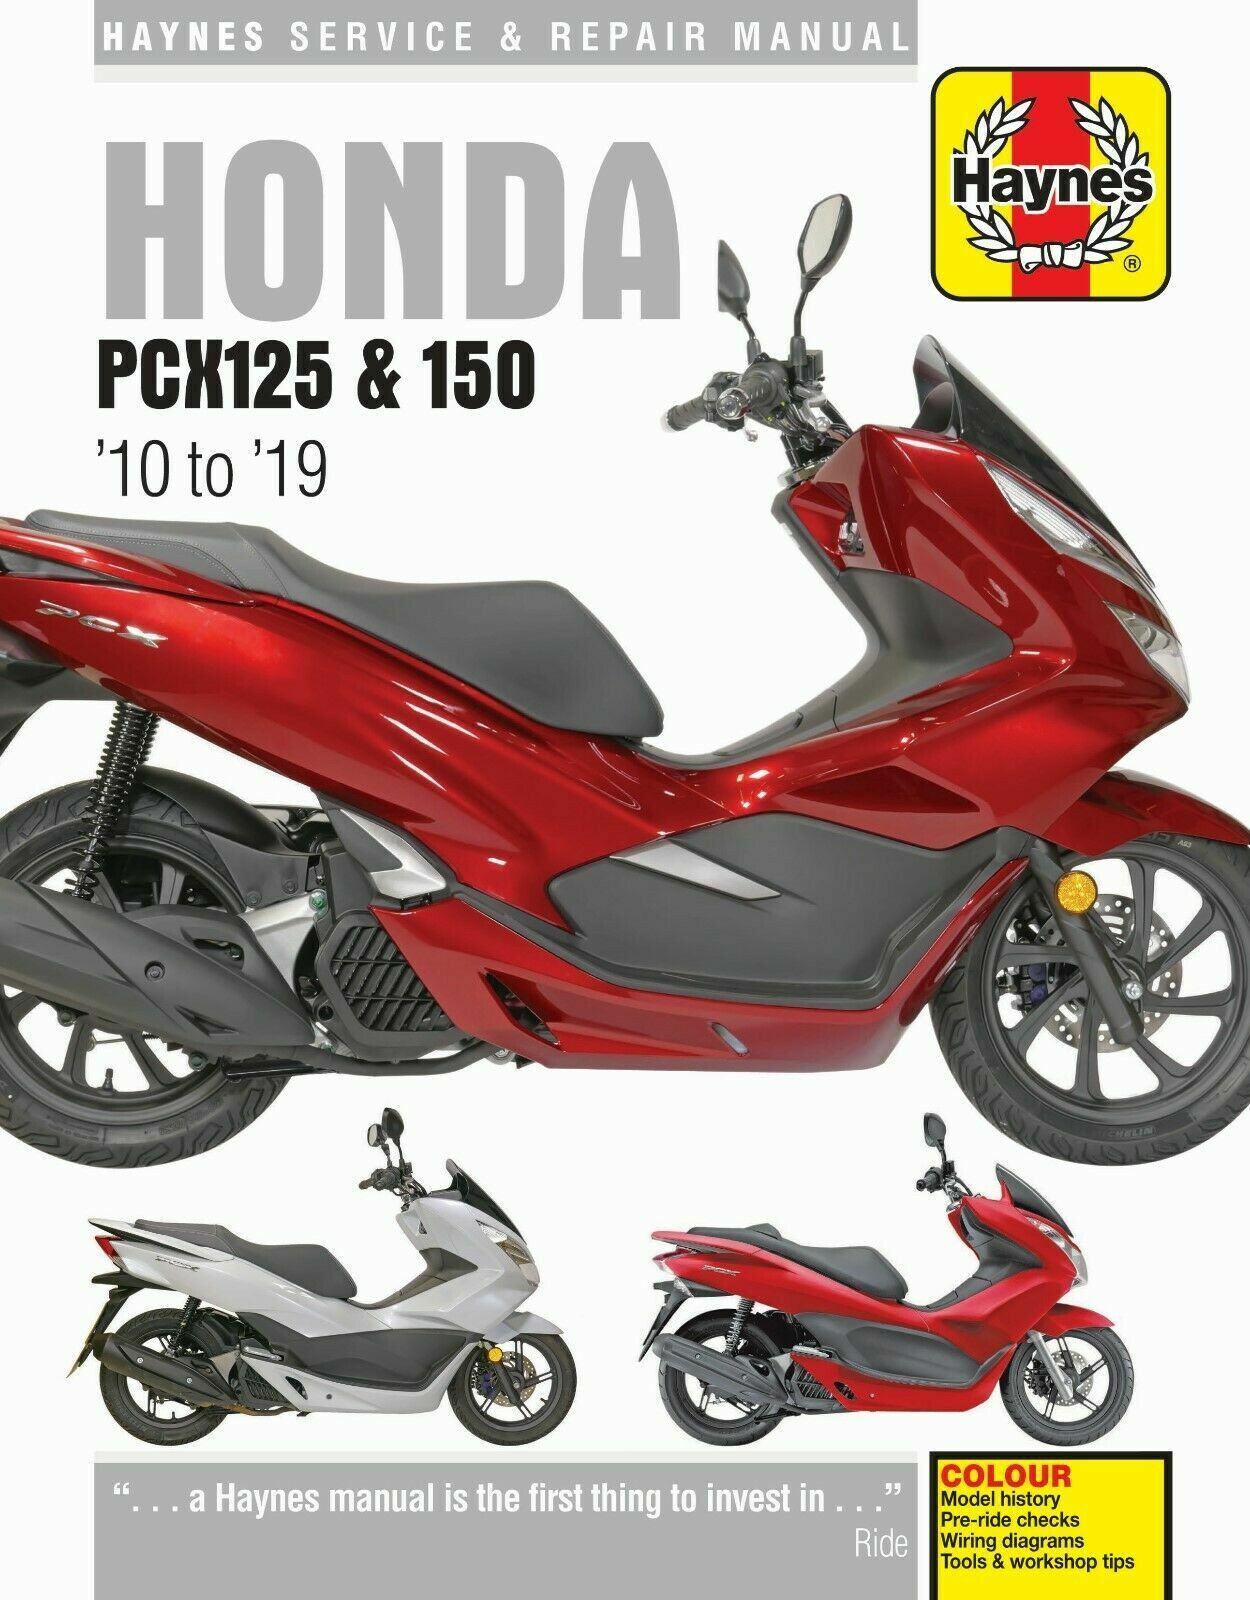 HAYNES 6447 HONDA PCX125 & 150 2010 TO 2019 MOTORBIKE MANUAL